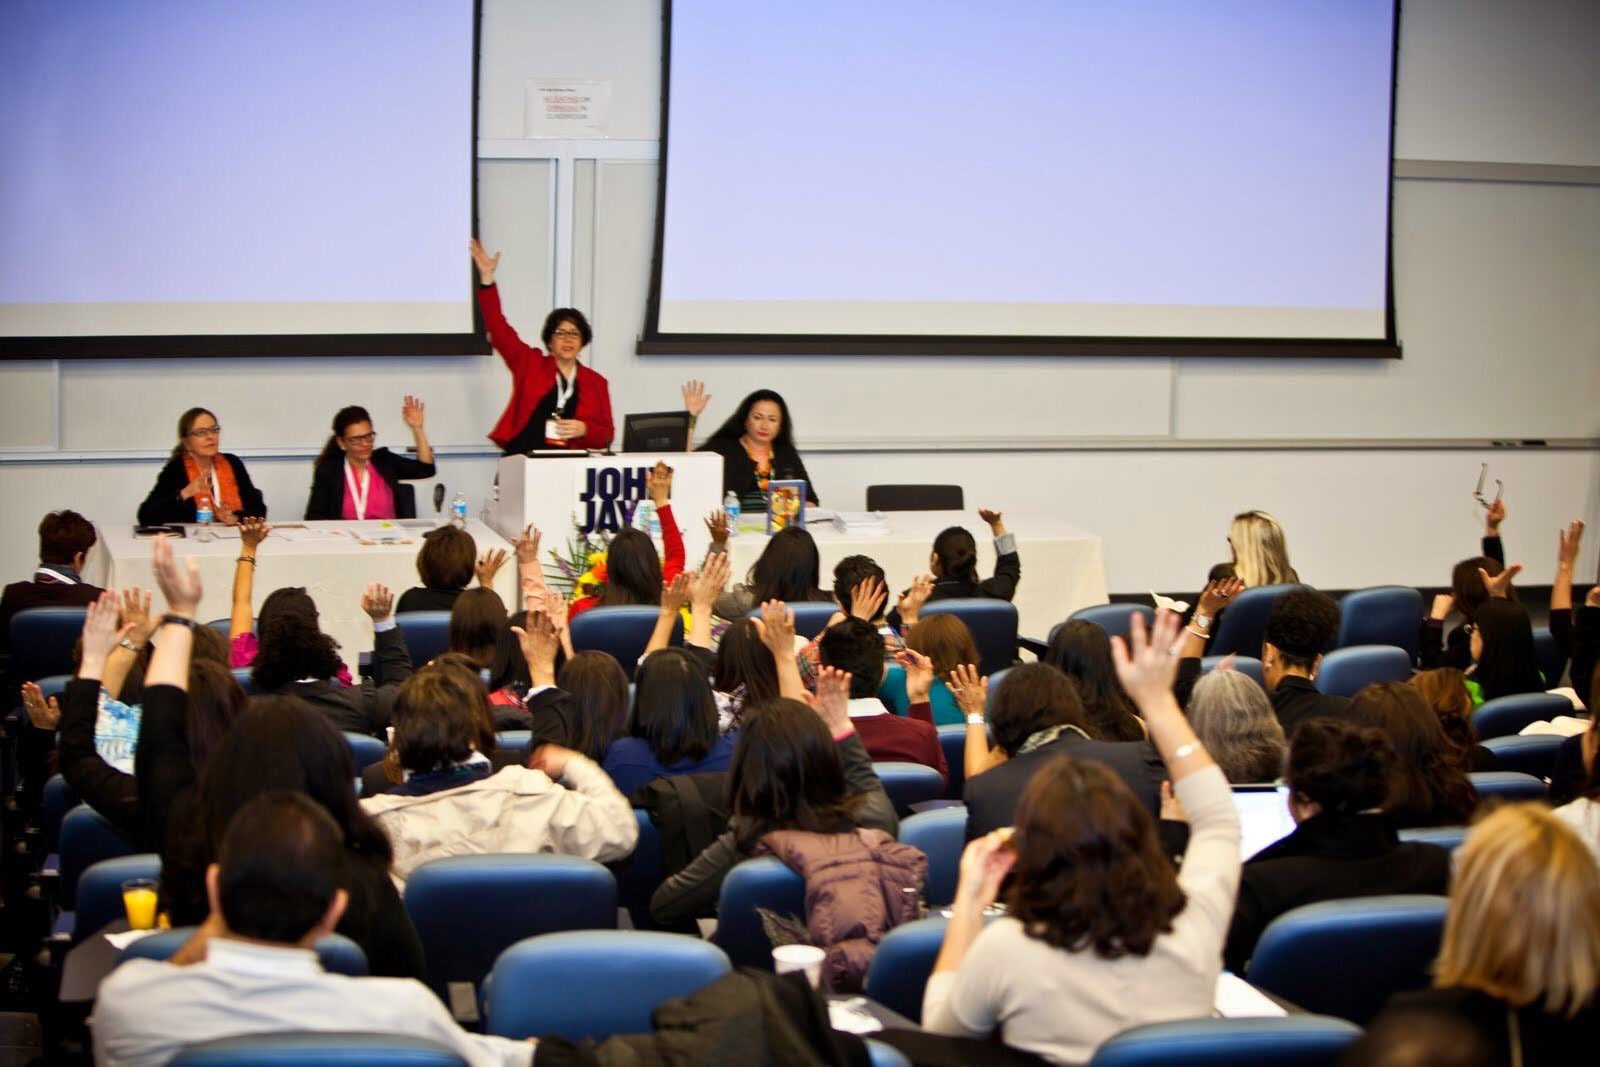 Raise your hand if you are ready for #lrc2016 Latina Researchers Conference this week in San Antonio Texas! https://t.co/widn8DDAm5